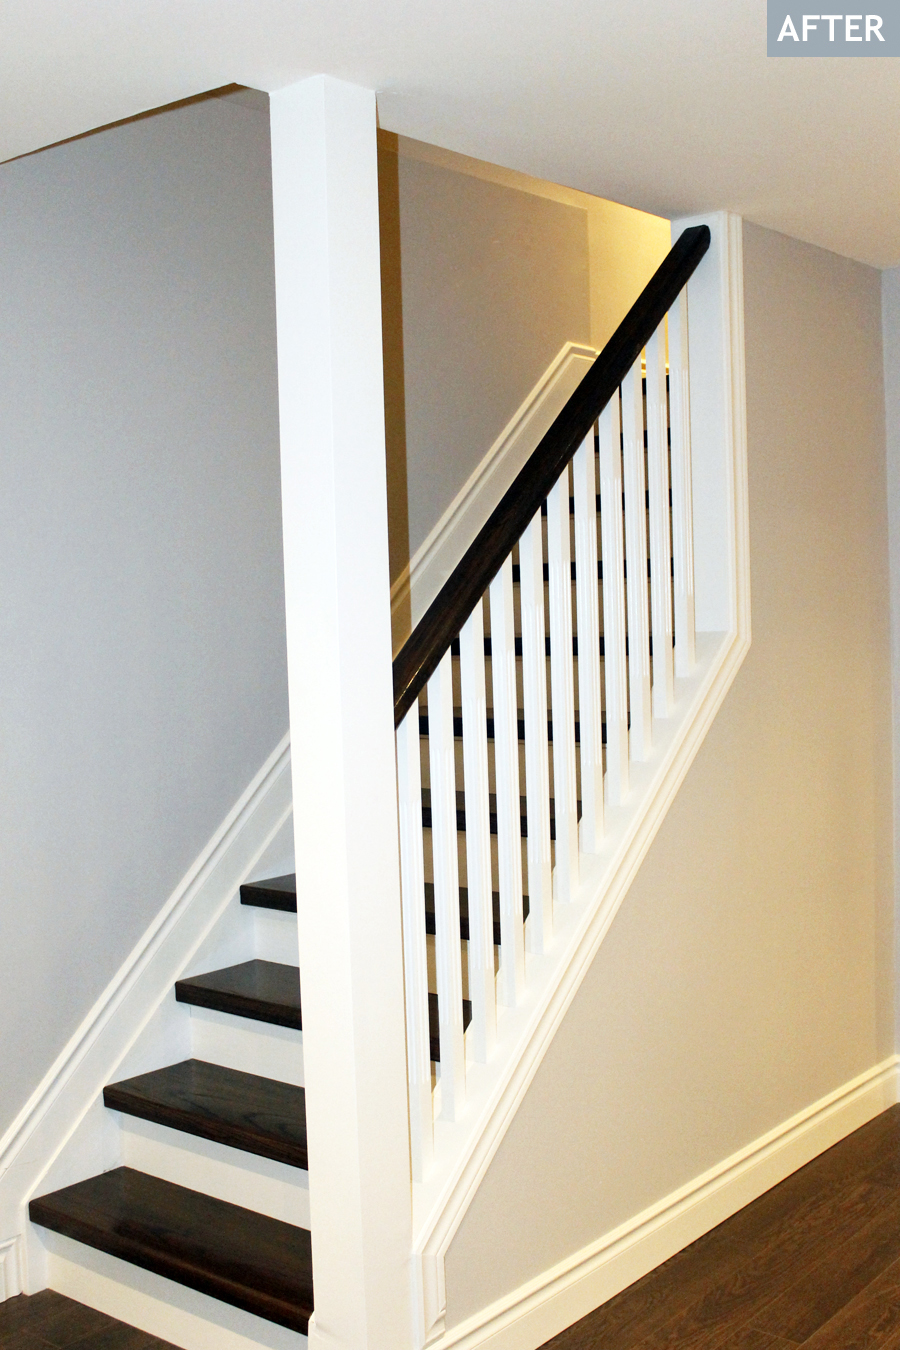 Basement Stairs Ideas: Basement Remodeling Ideas: Basement Stairs Ideas